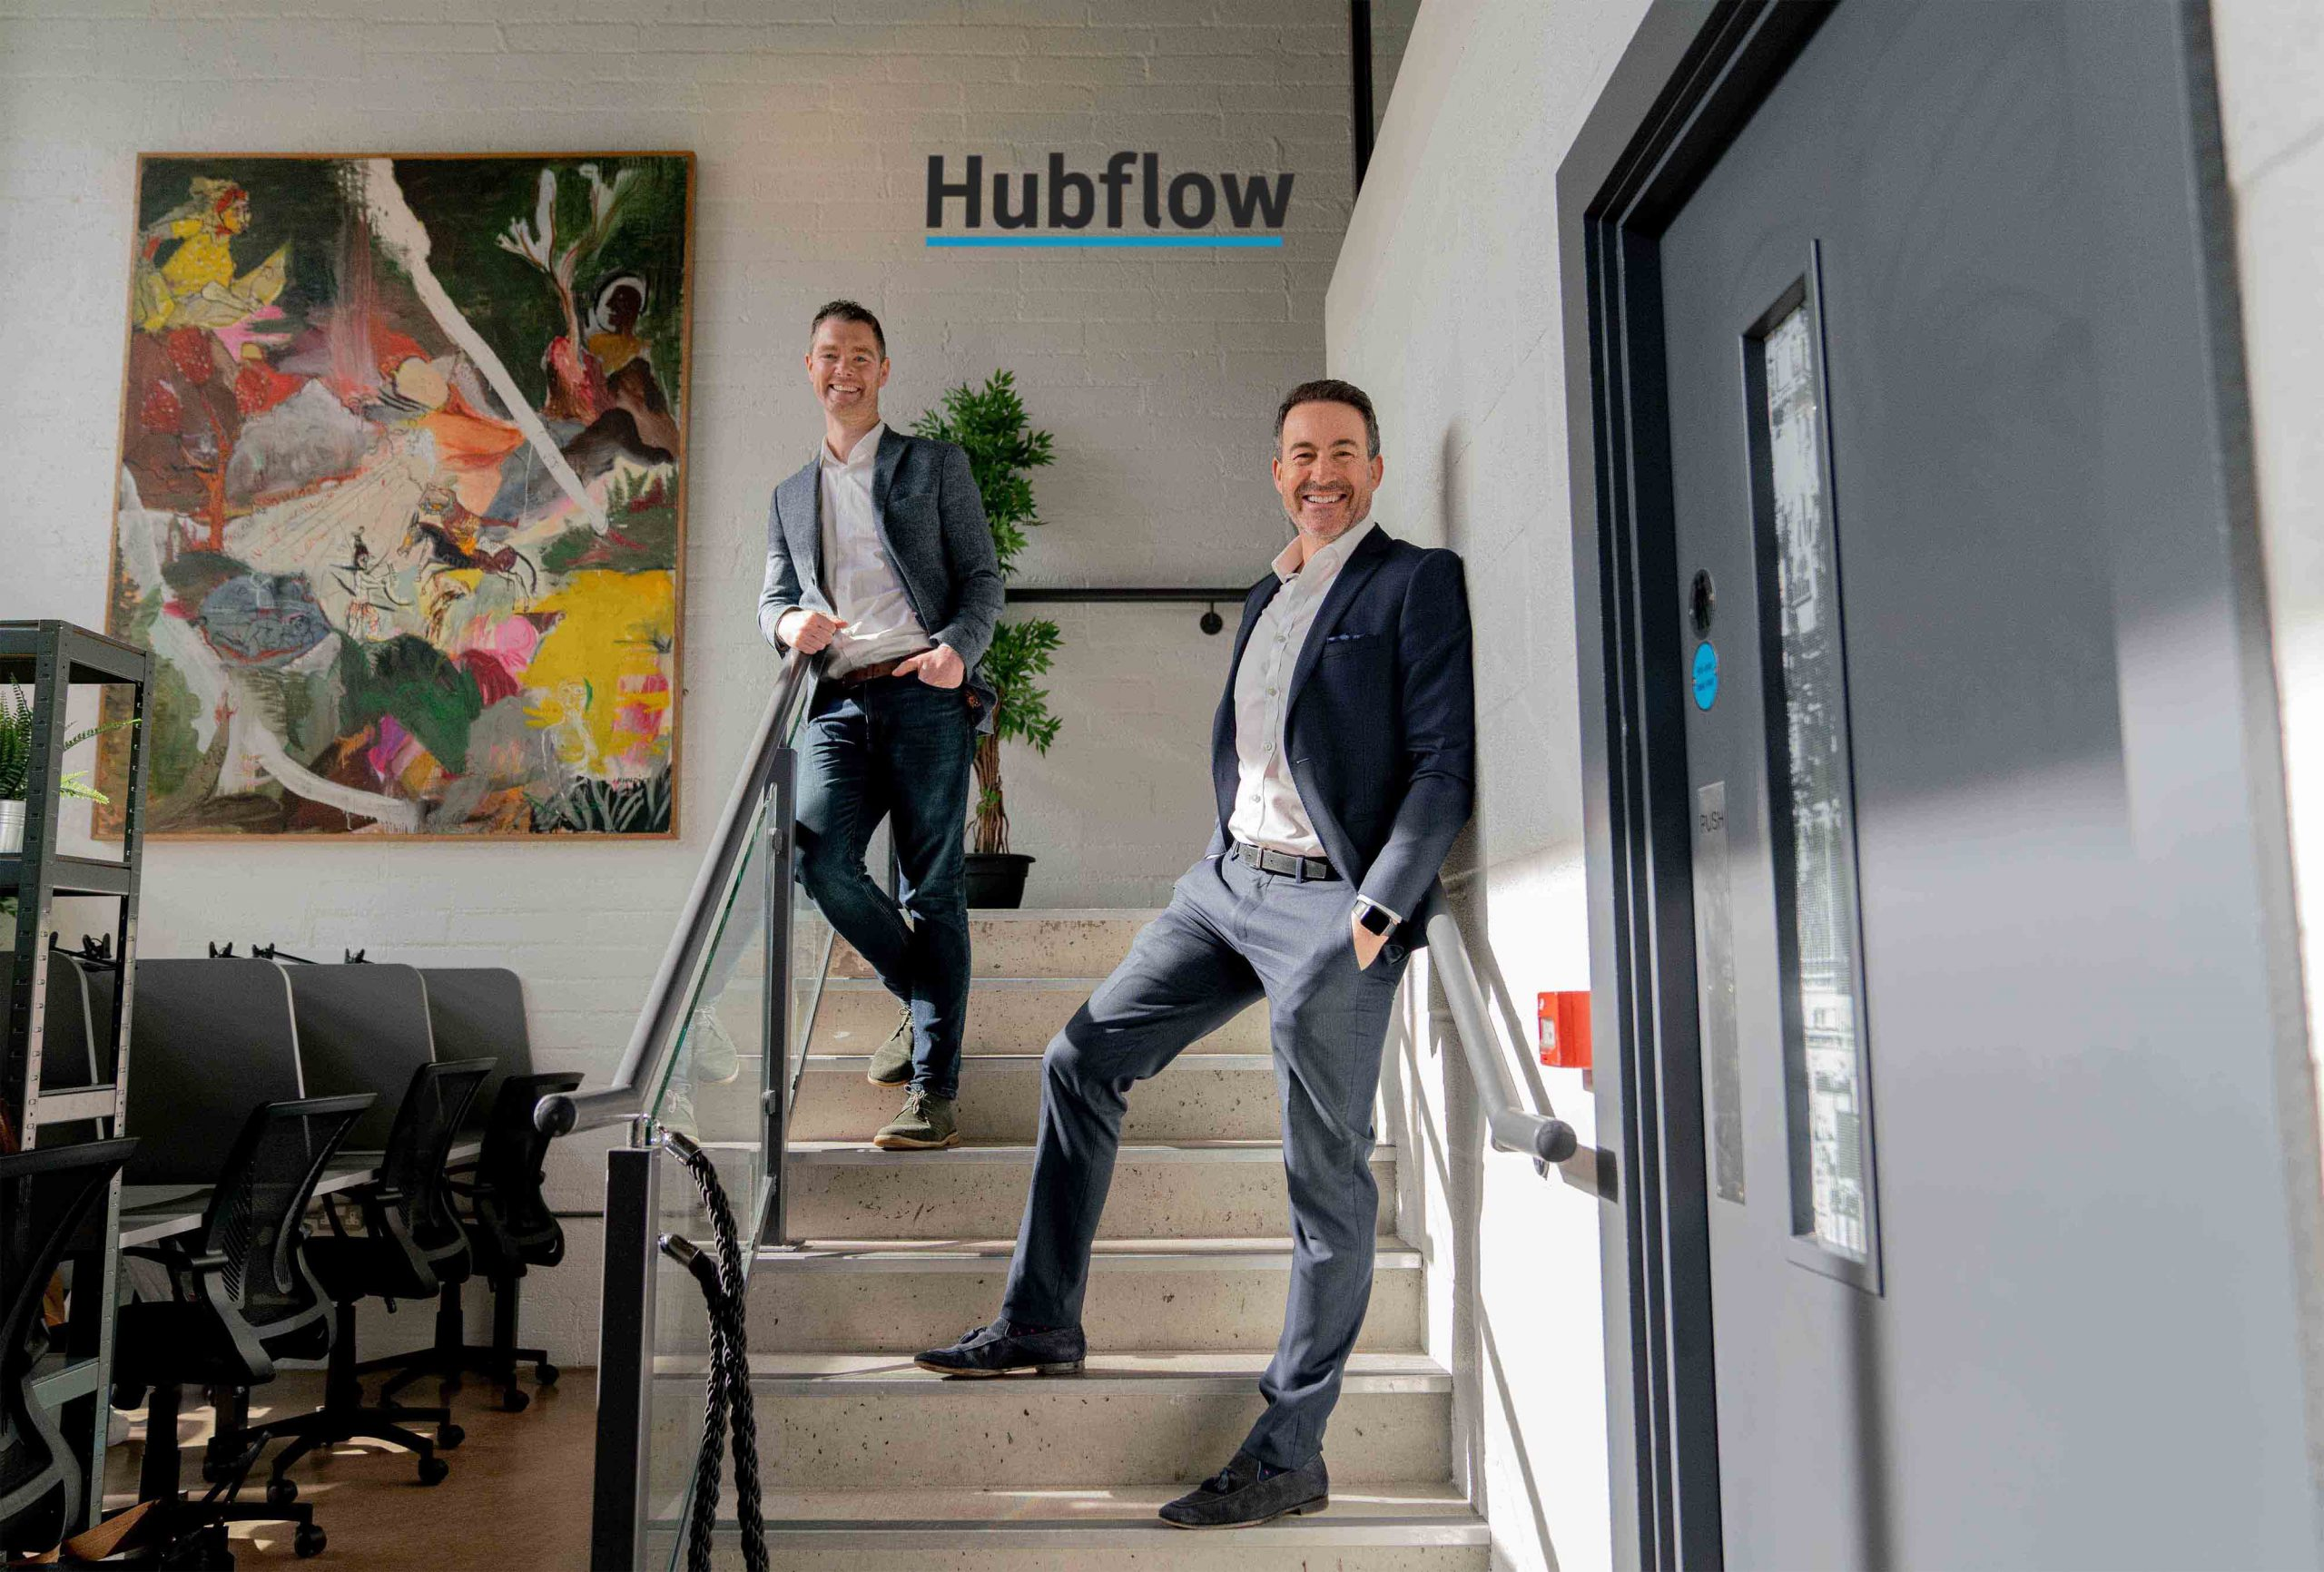 GOING WITH THE 'FLOW': The traditional office working model is dead, according to Declan Mellan (left) and Gary McCausland, founders of Belfast-based Hubflow, a new hybrid working facility that offers companies, freelancers and entrepreneurs the flexibility to book anything from a single desk for one day to a dedicated full-time office suite for up to eight staff, with superfast Wi-Fi, full business support and access to key office facilities including complimentary tea, coffee and filtered water. With many businesses reviewing their office working practices to reduce overheads and increase efficiency, Hubflow has experienced a high demand for its services since launching at the end of 2020, and is expected to create at least 12 full and part time jobs over the next 12 months. For more information on Hubflow, or to book a free 'no obligation' tour with complimentary barista coffee from Koffee Hub, interested parties can go to www.hubflow.co.uk, call 033 0088 7358 or send an email enquiry to info@hubflow.co.uk.